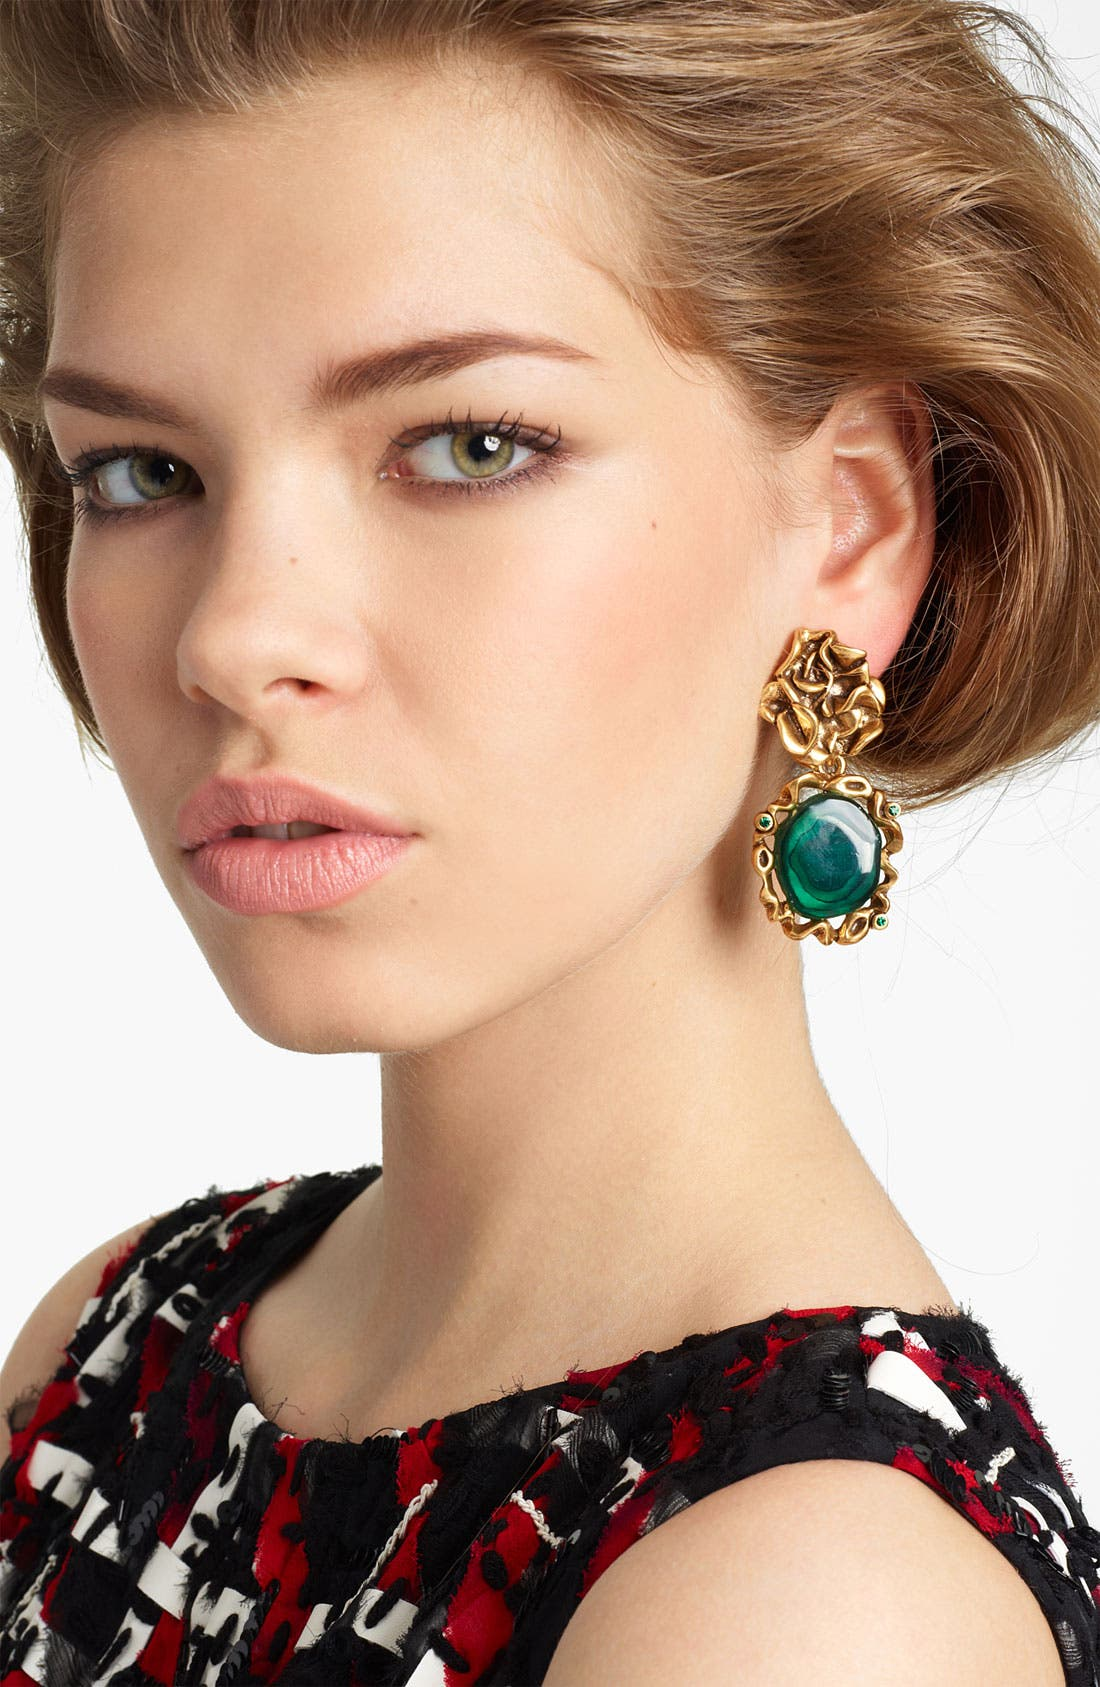 Alternate Image 1 Selected - Oscar de la Renta Ruffle Motif & Geode Drop Earrings